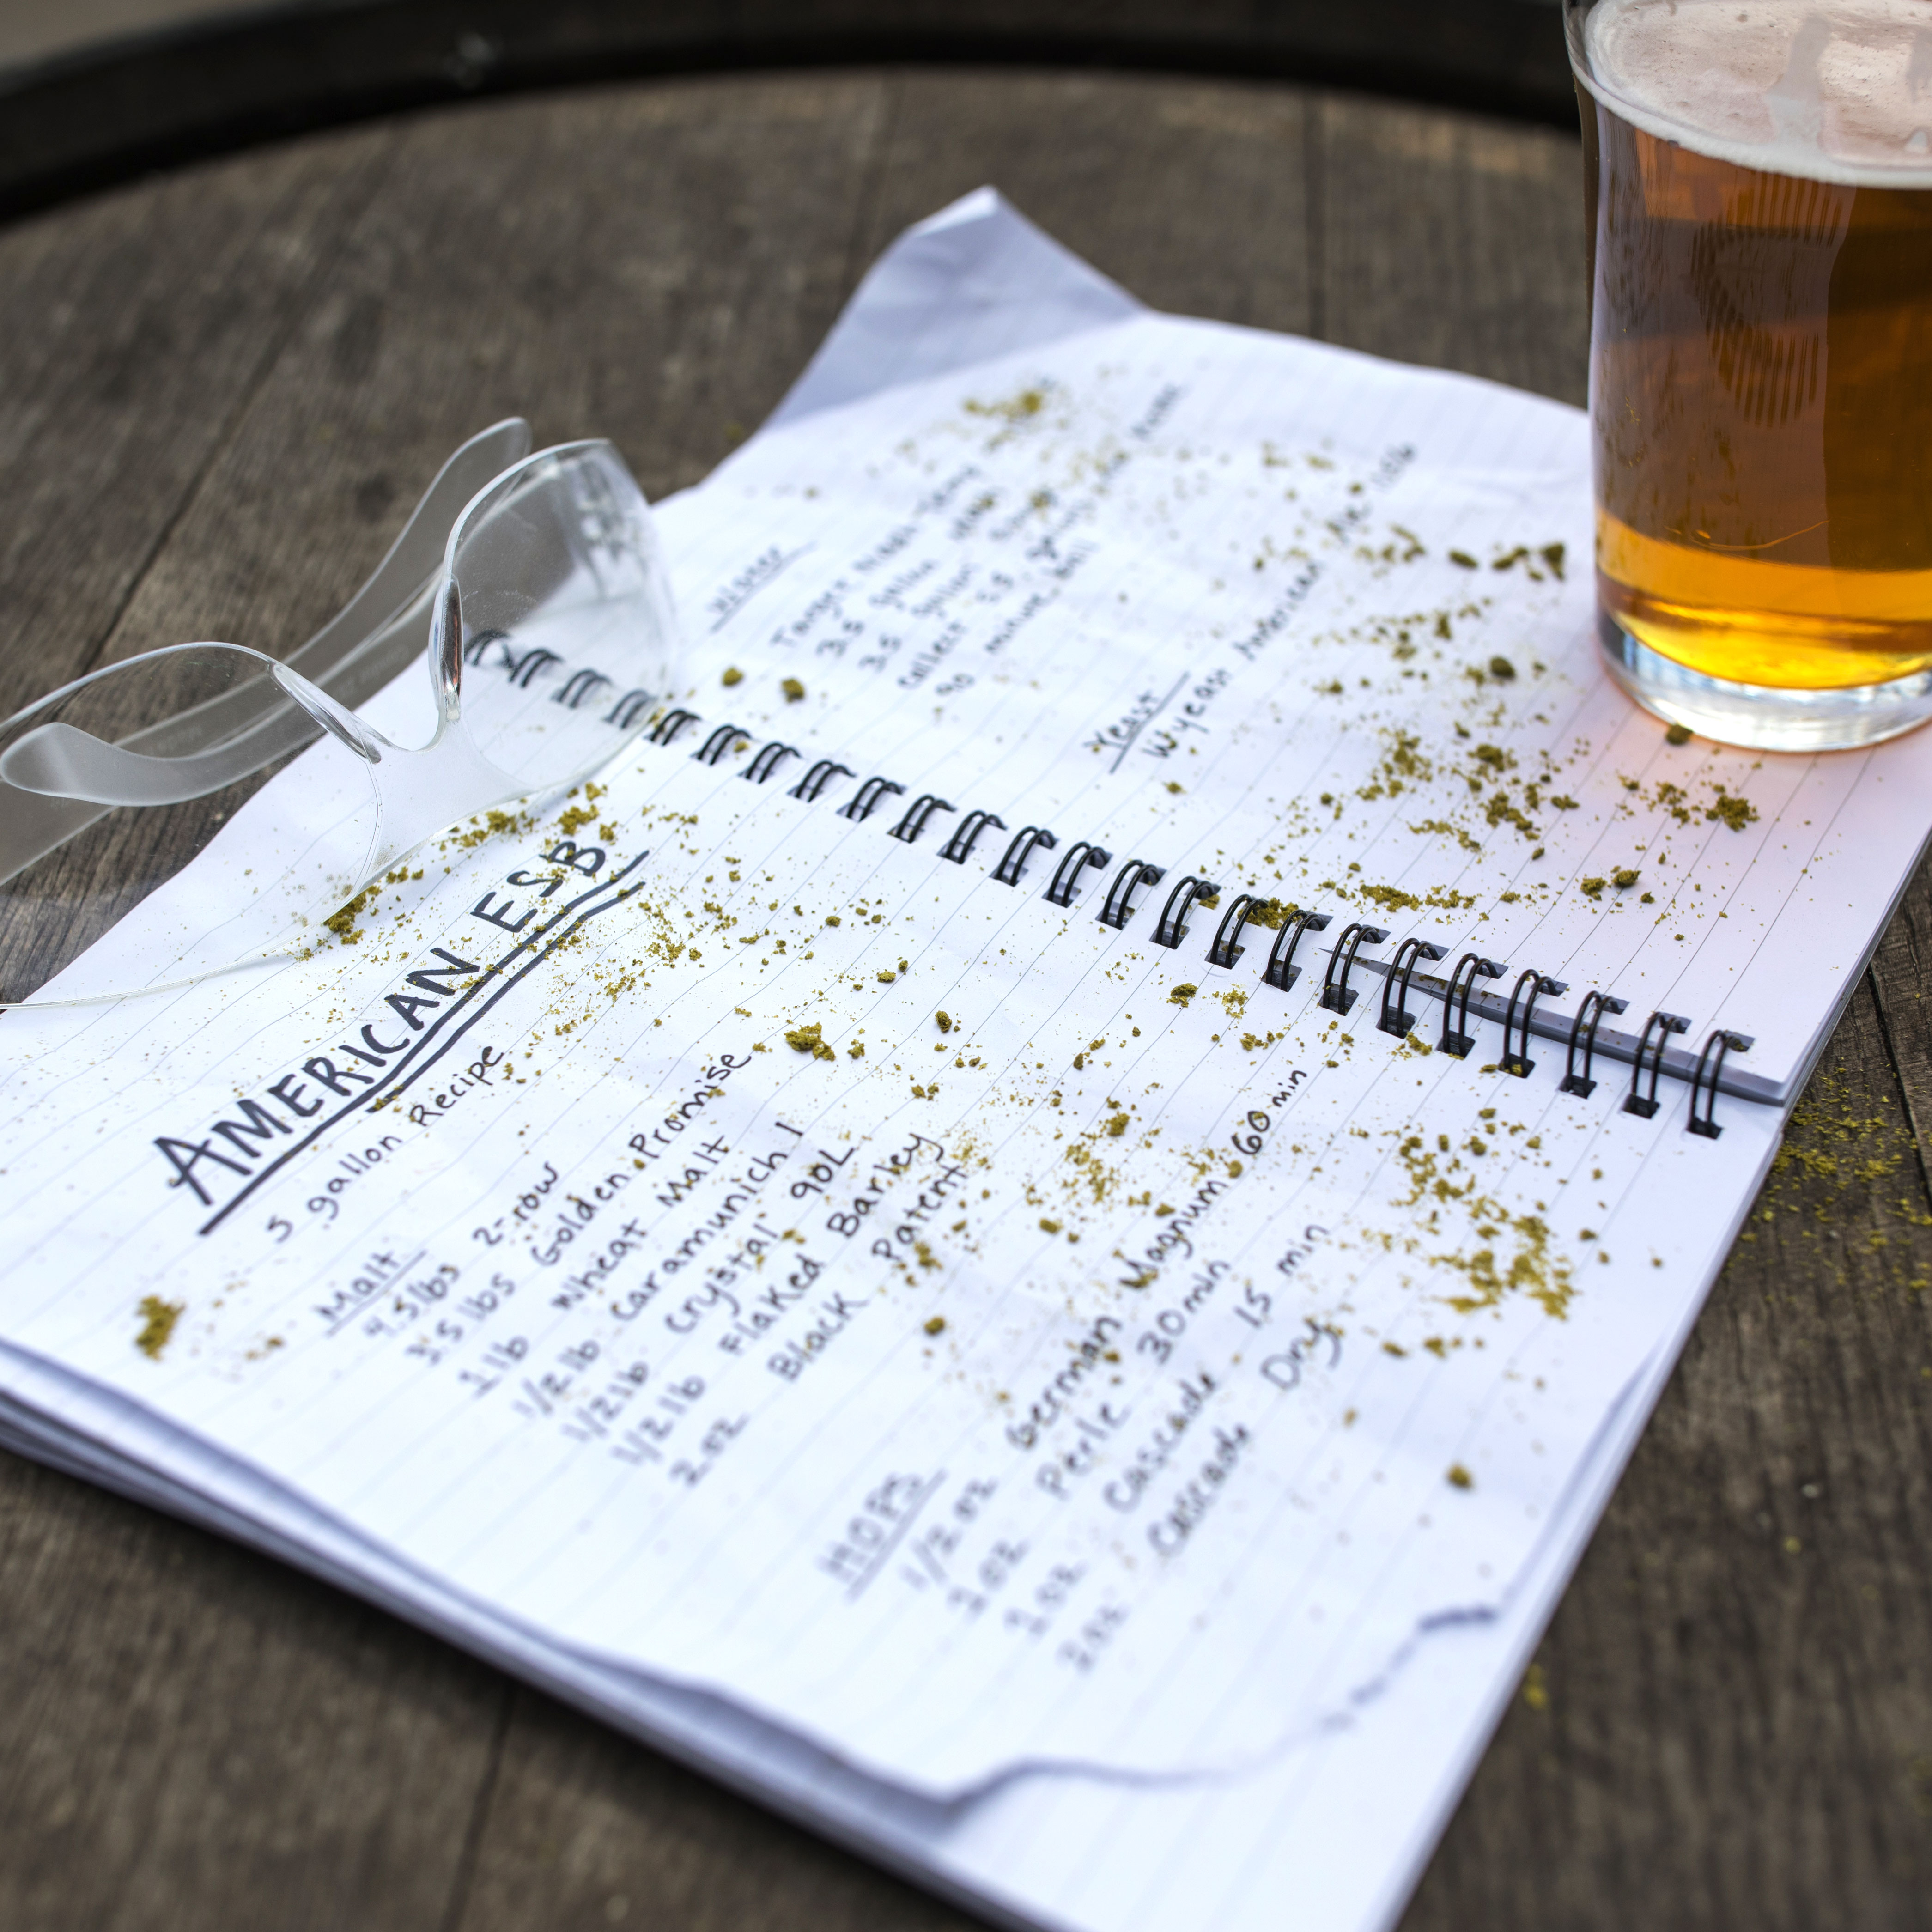 Notebook with recipe and glass of beer